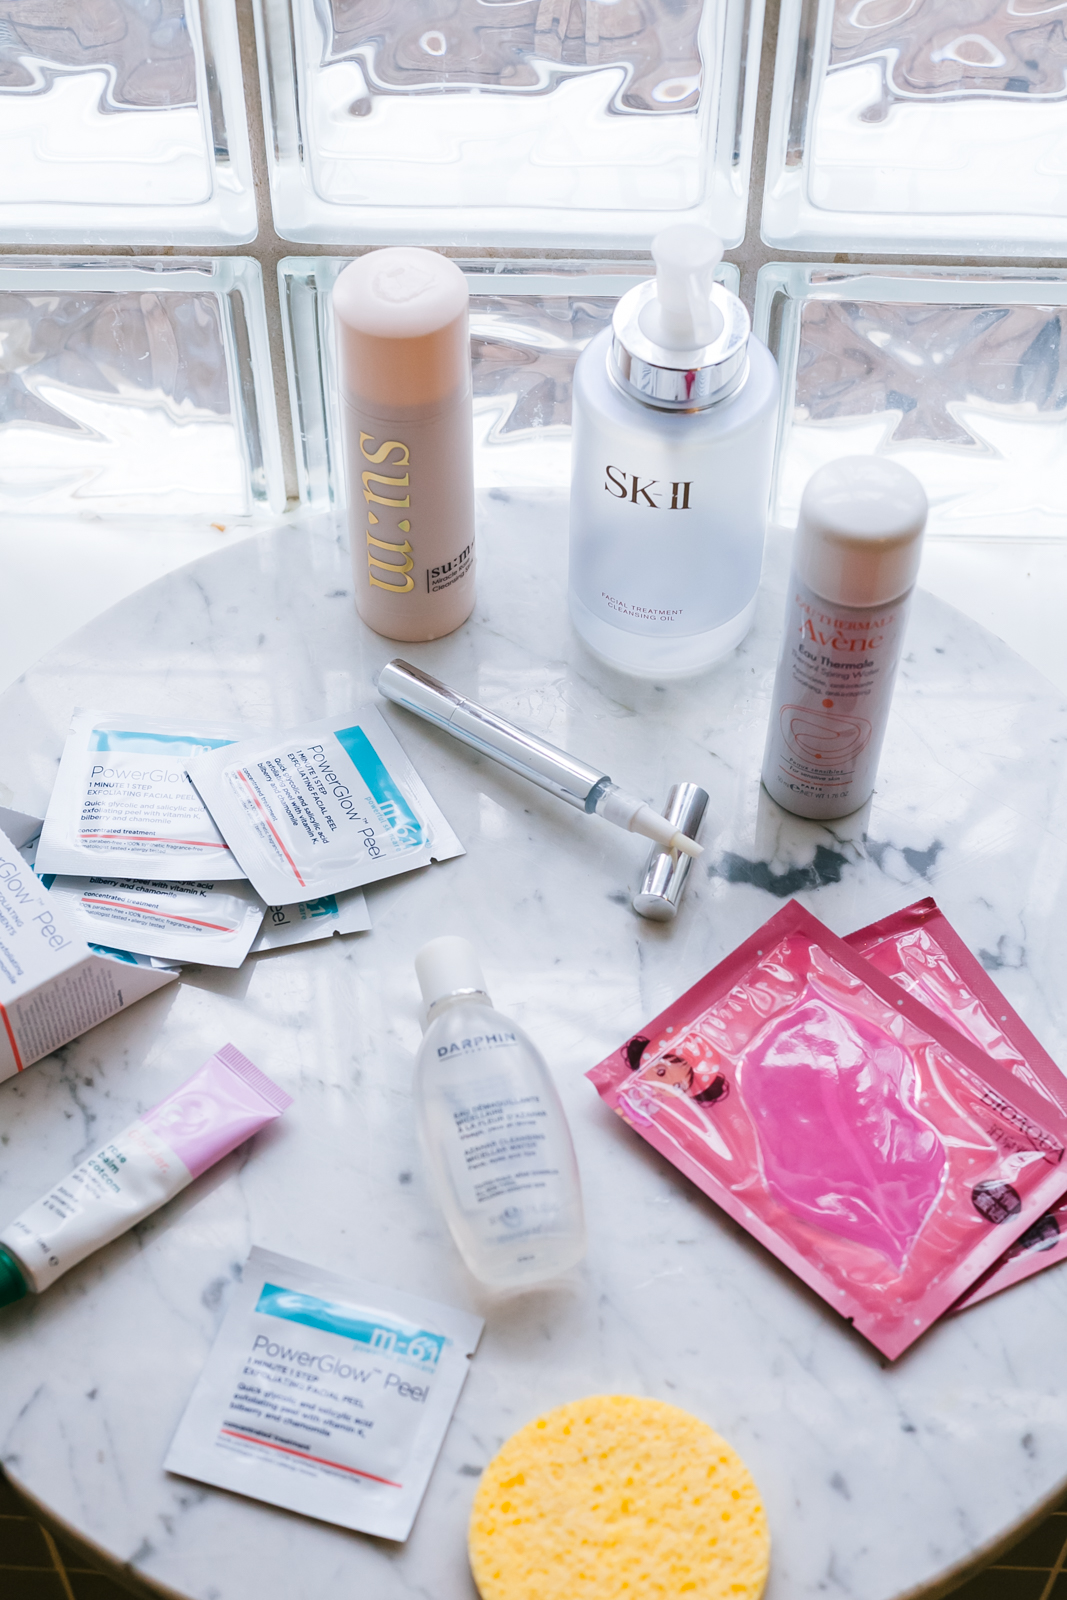 NoMad Luxuries shares newest beauty products and favorites for skincare